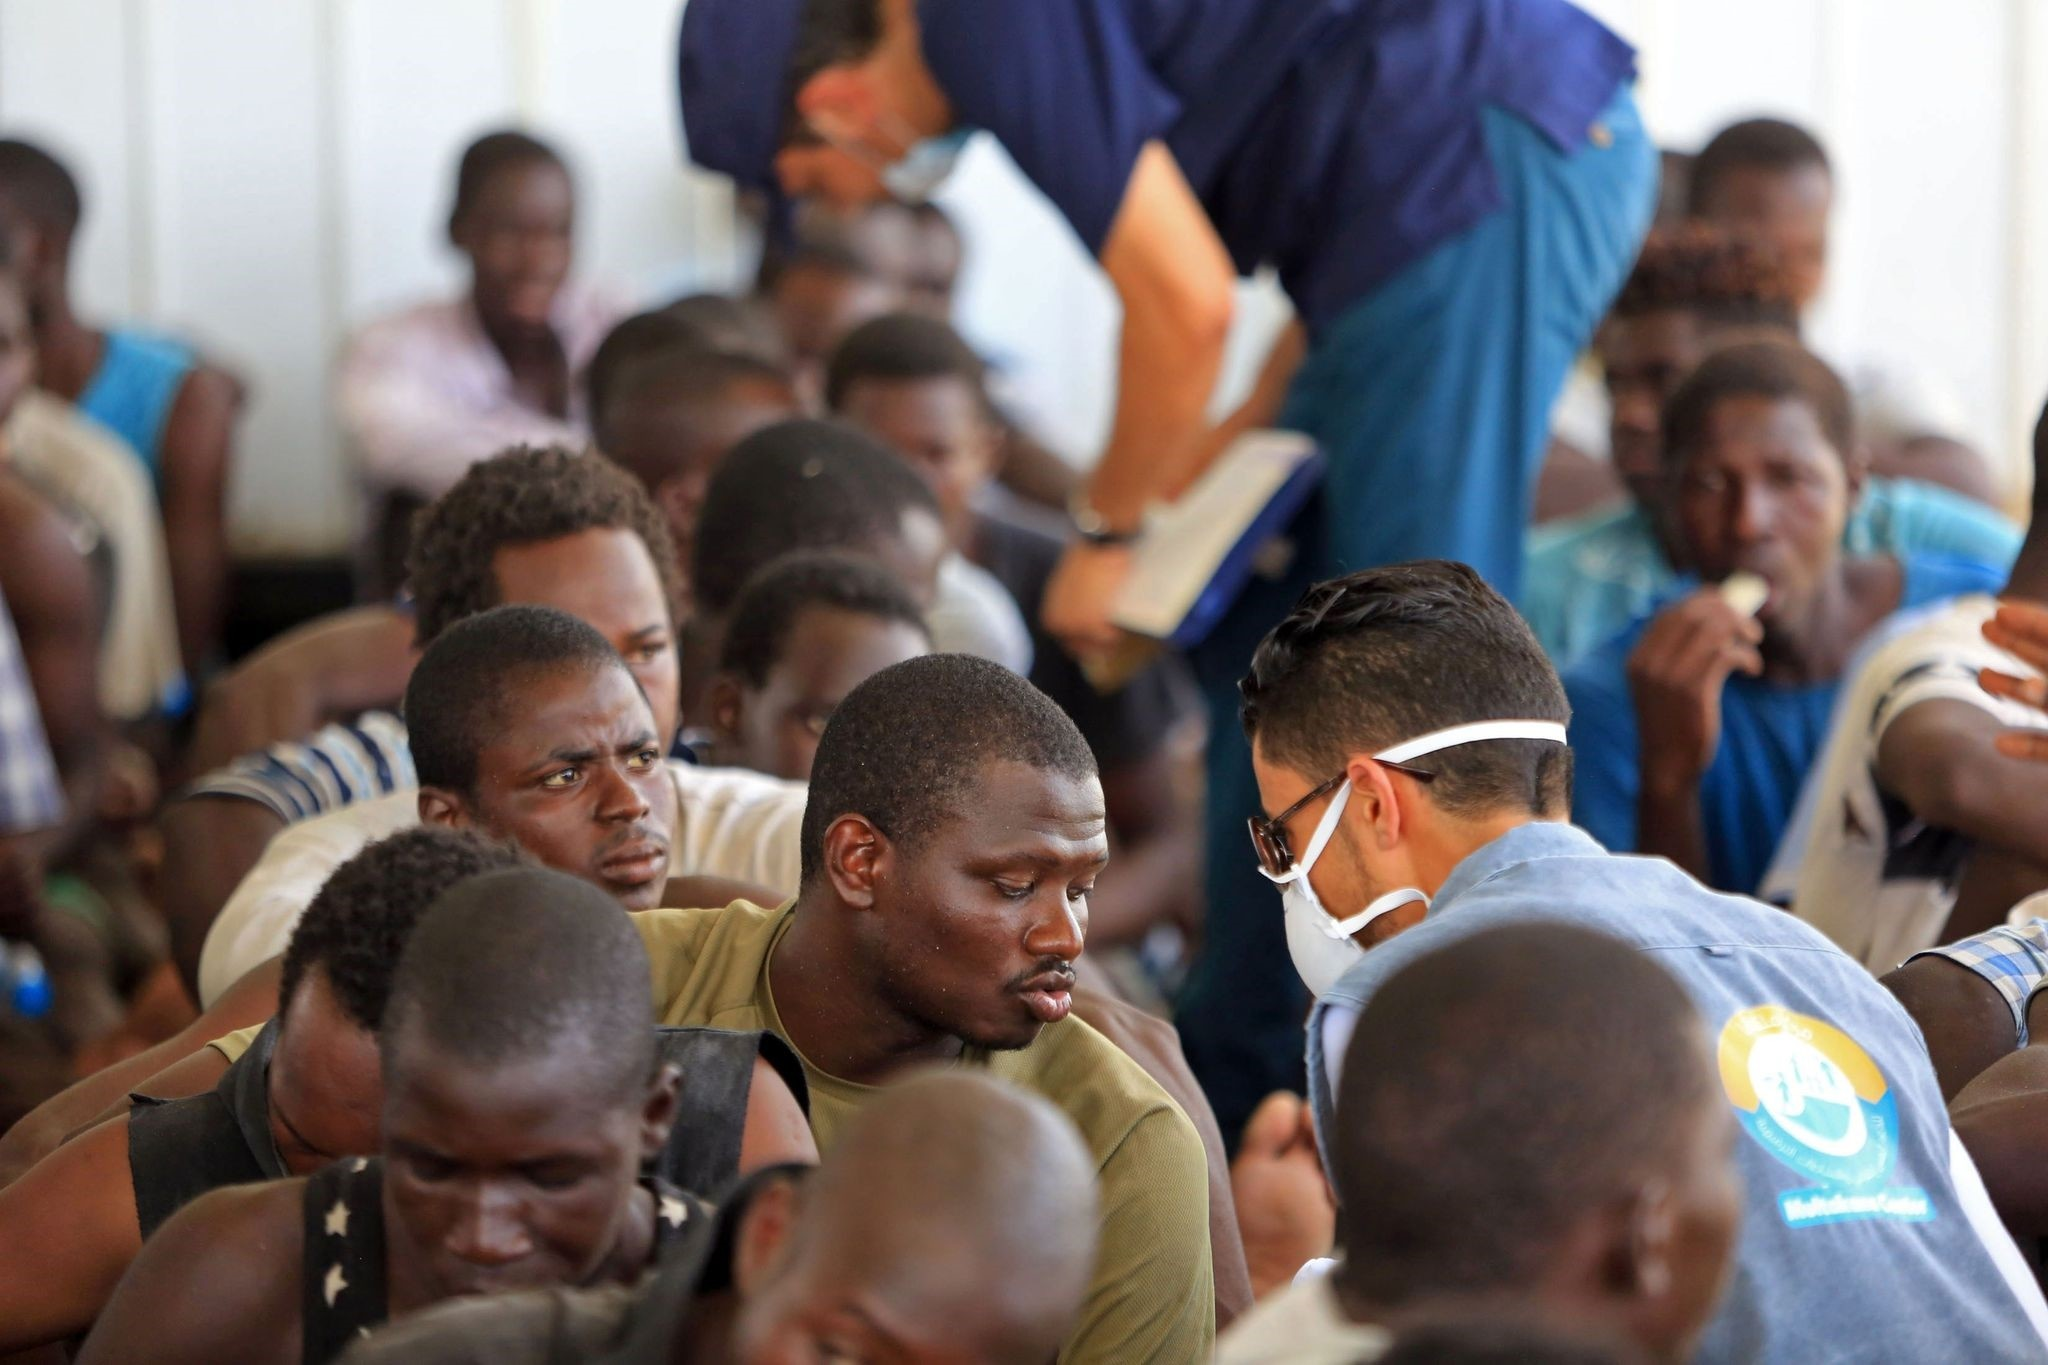 Aid workers talk with migrants from Africa, at a naval base in Tripoli after they were rescued by Libyan coastguards in the Mediterranean Sea off the Libyan coast, on July 24, 2017. (AFP Photo)